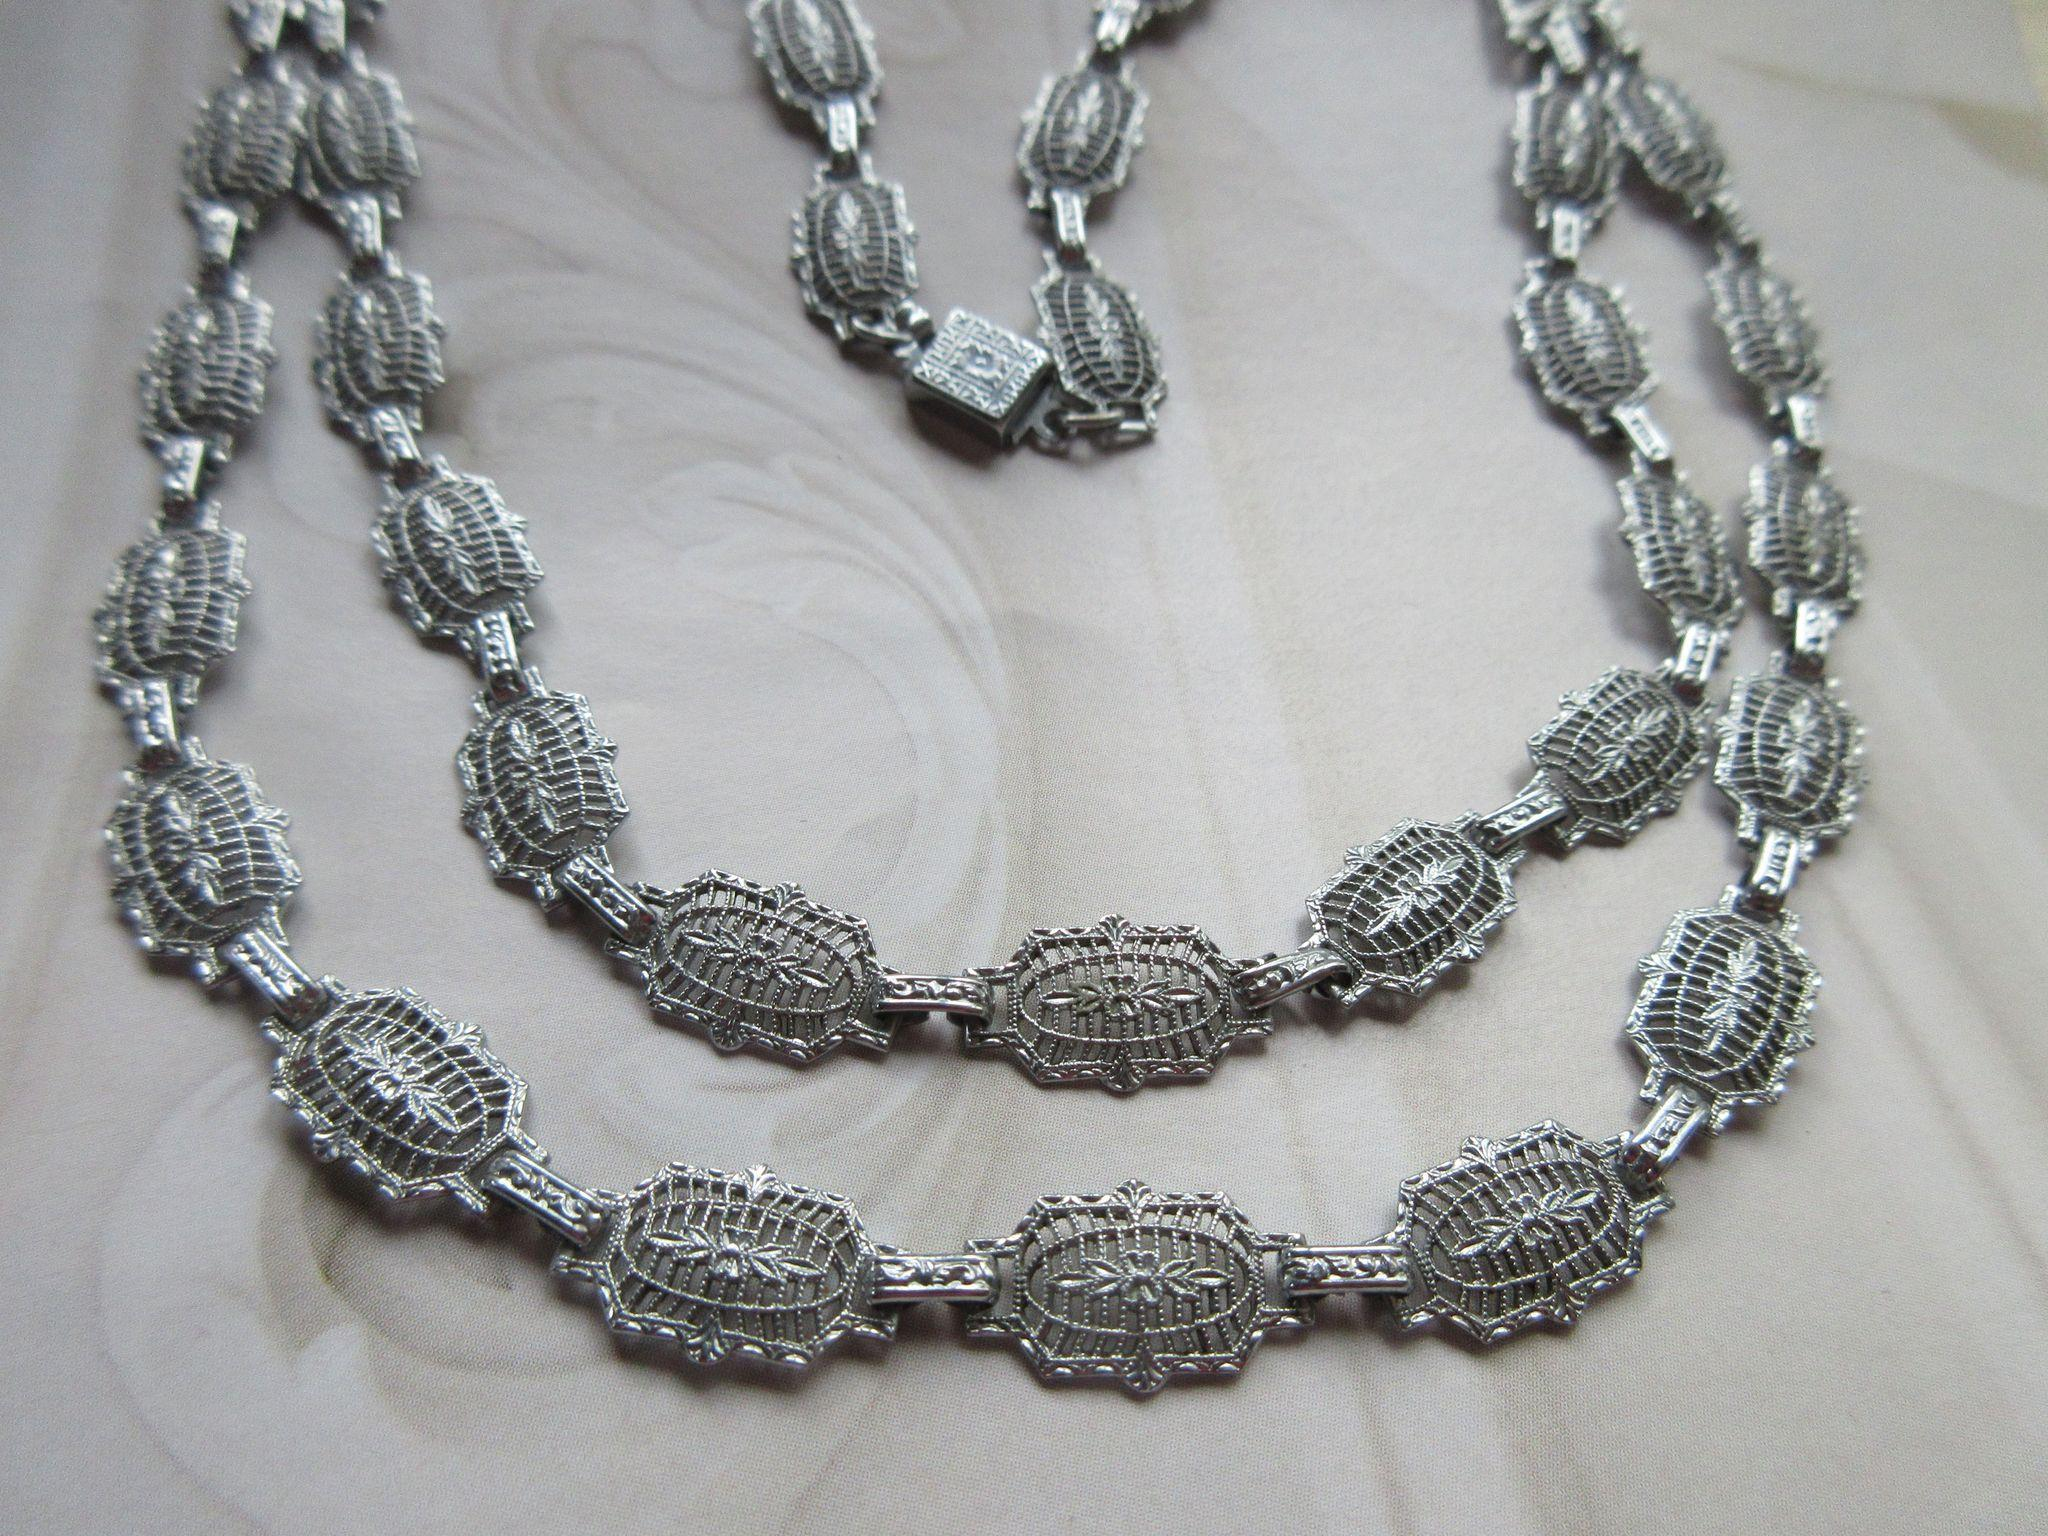 Deco Filigree Chromium Plated Necklace PSCO Hallmark